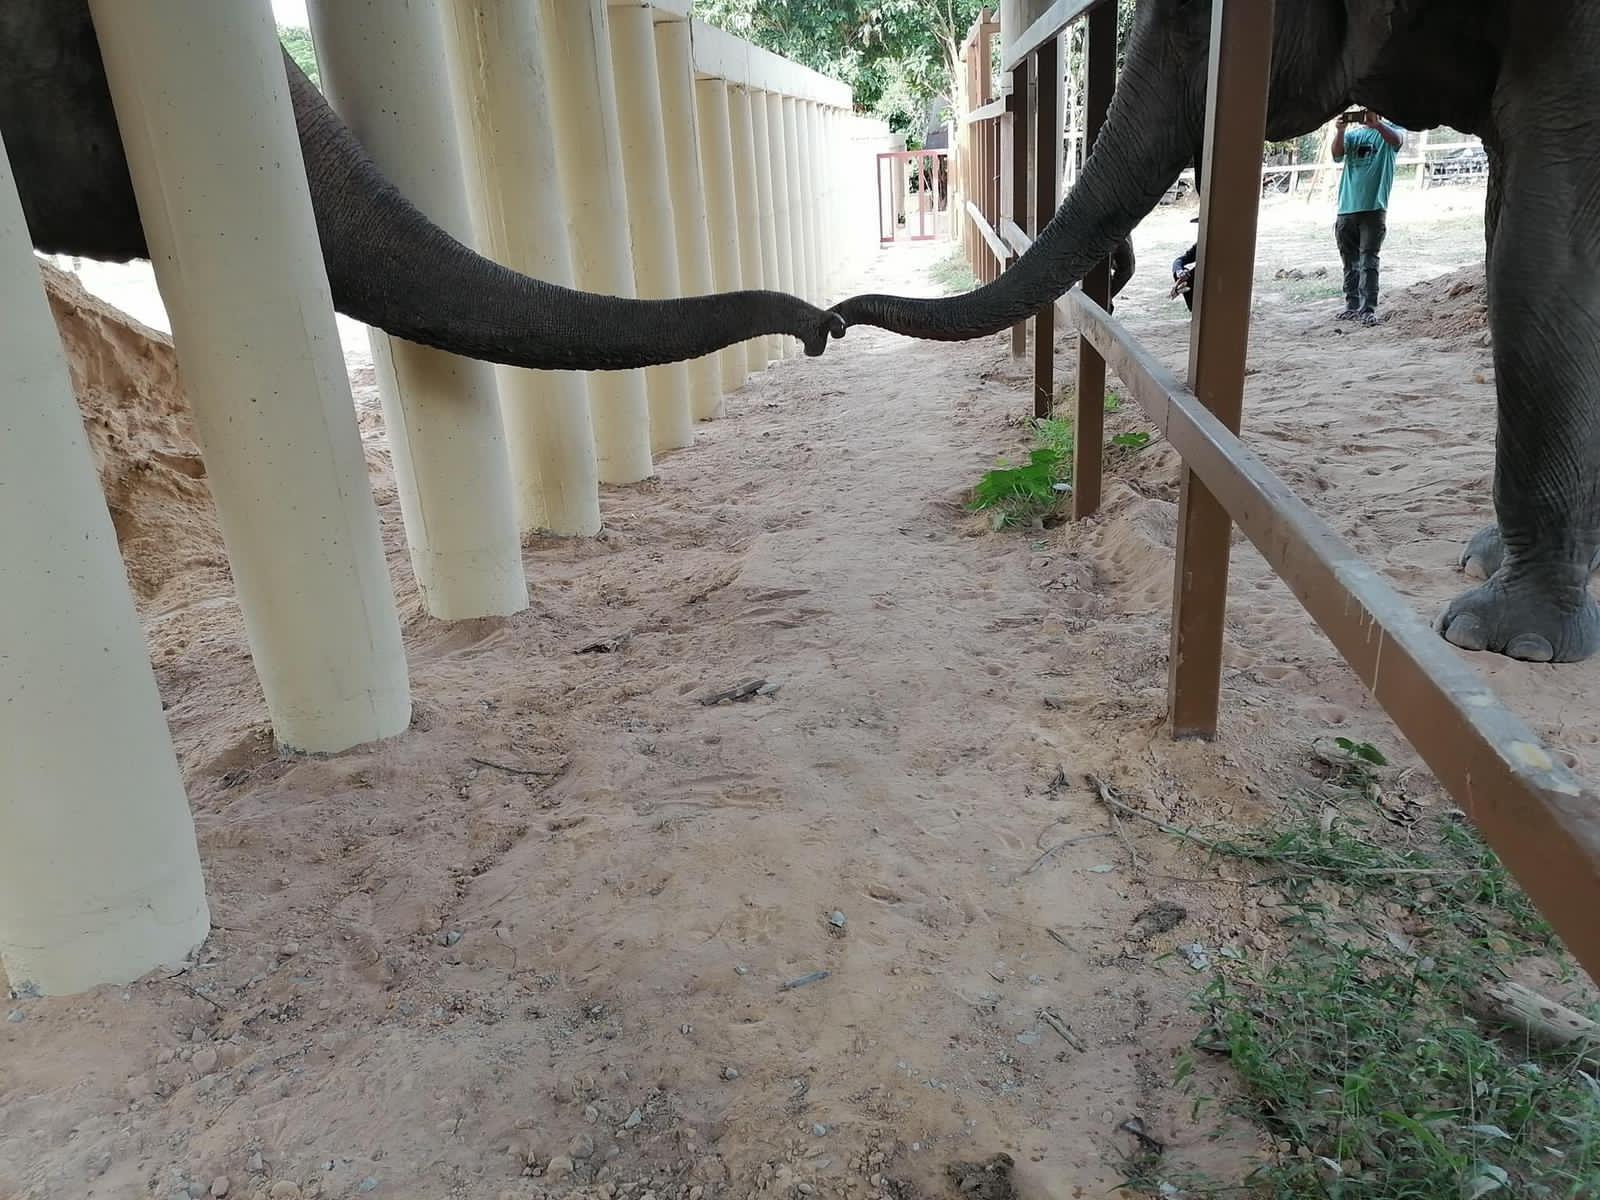 Kaavan interacts with another elephant after years of isolation